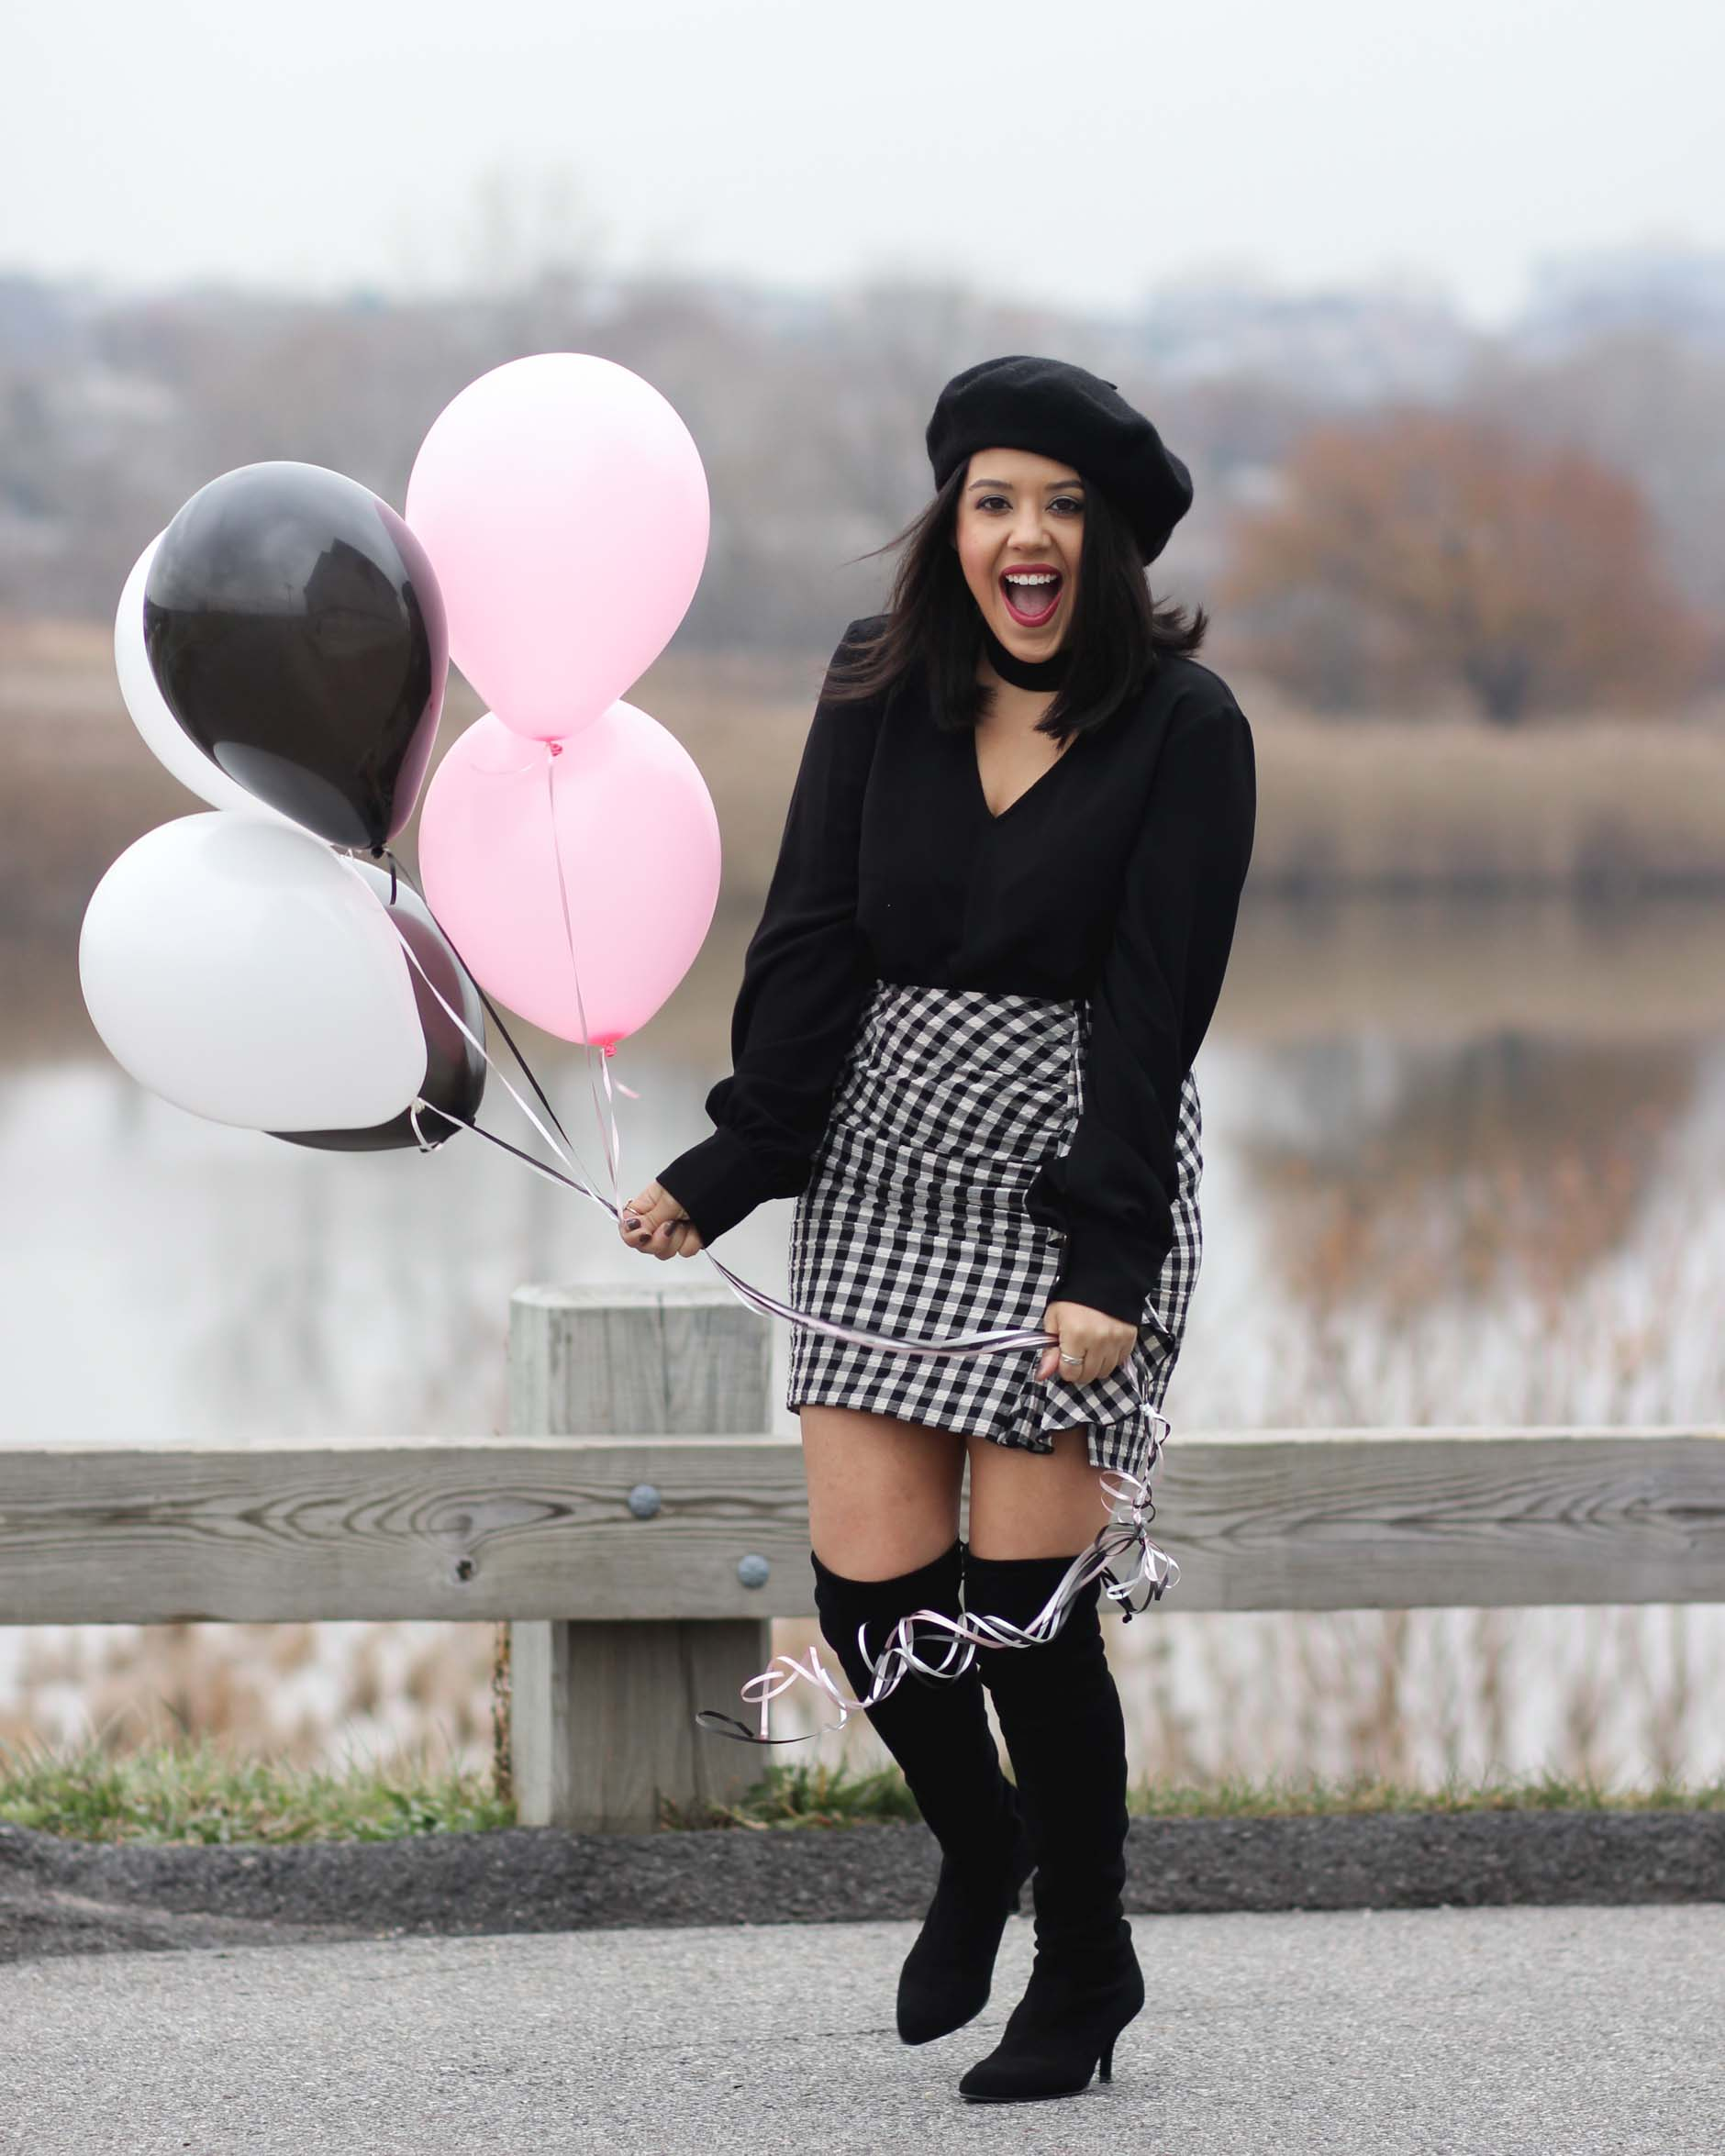 naty michele wearing beret and otk boots holding balloons